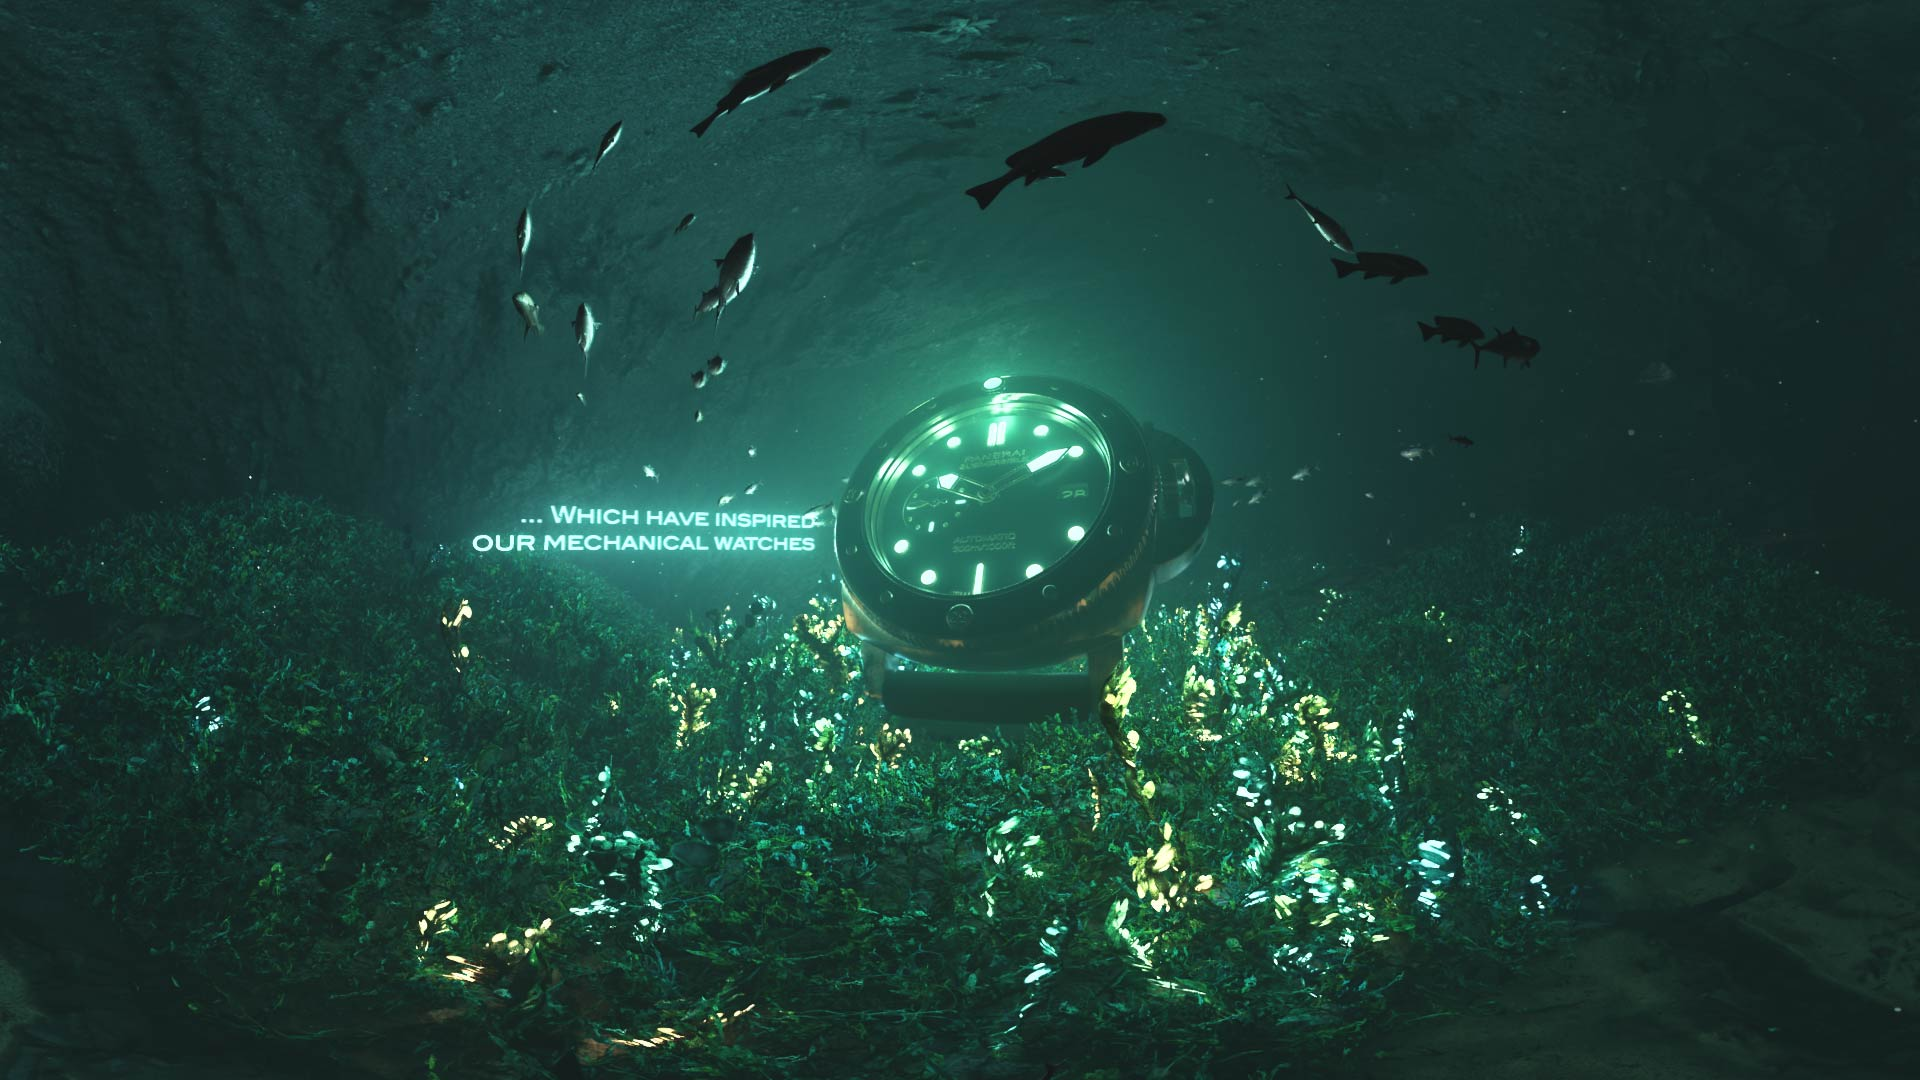 3D render of a luminescent Panerai watch in an underwater cave with glowing plants